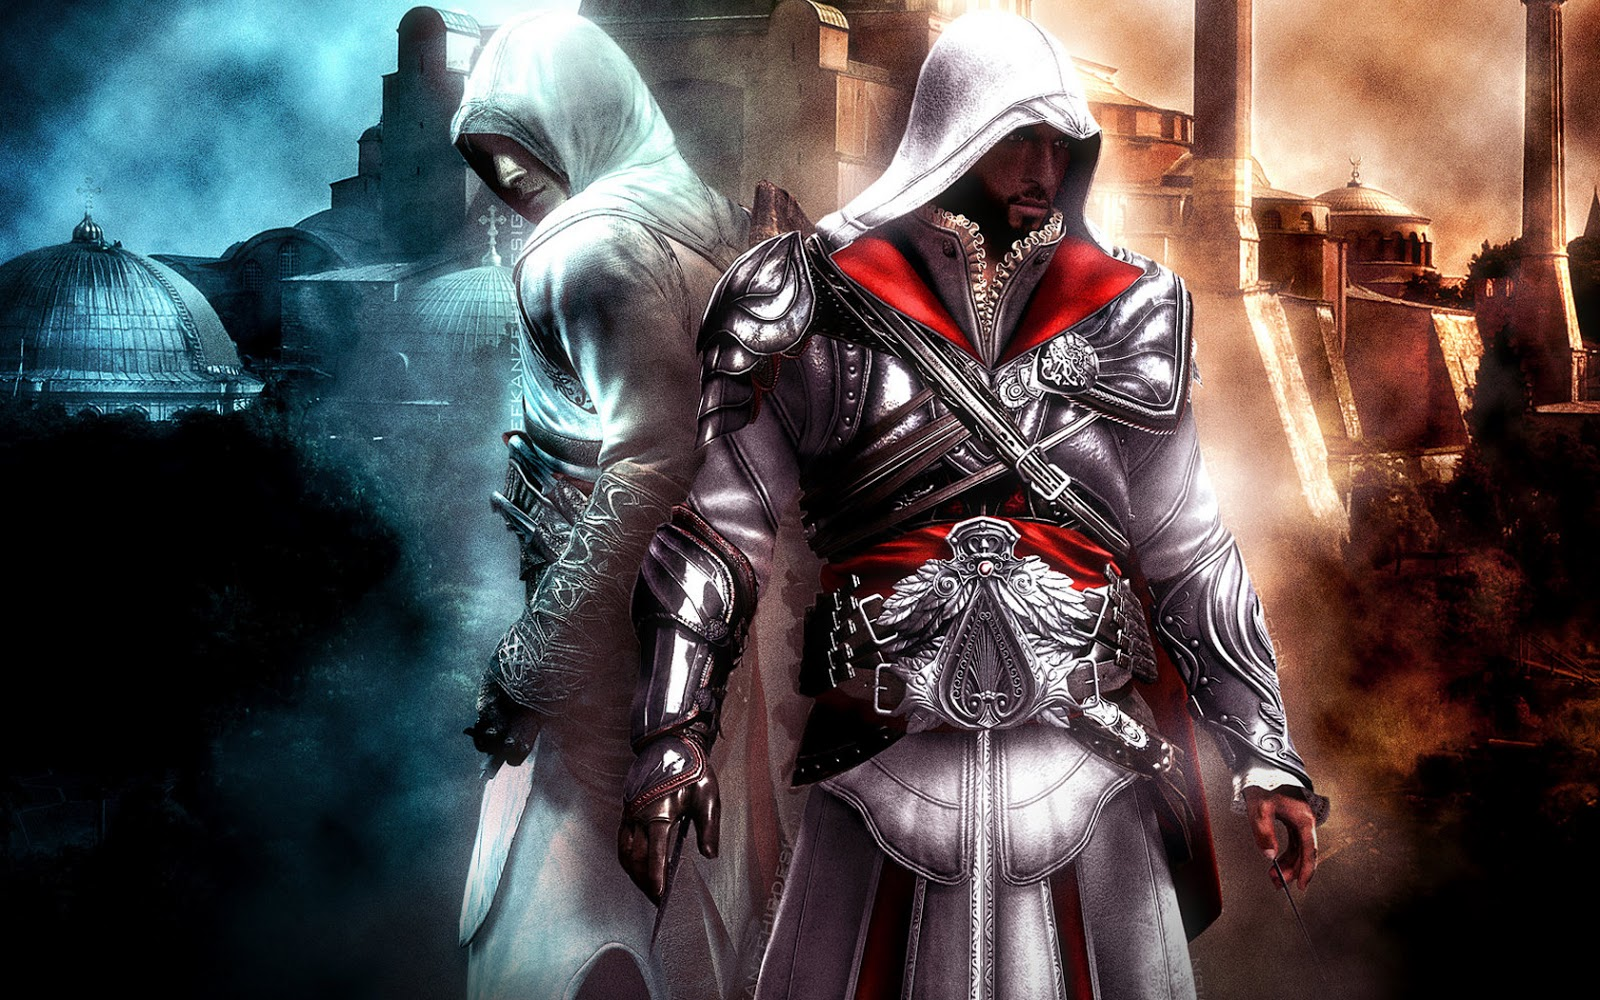 Assassin's Creed 4 HD Wallpapers